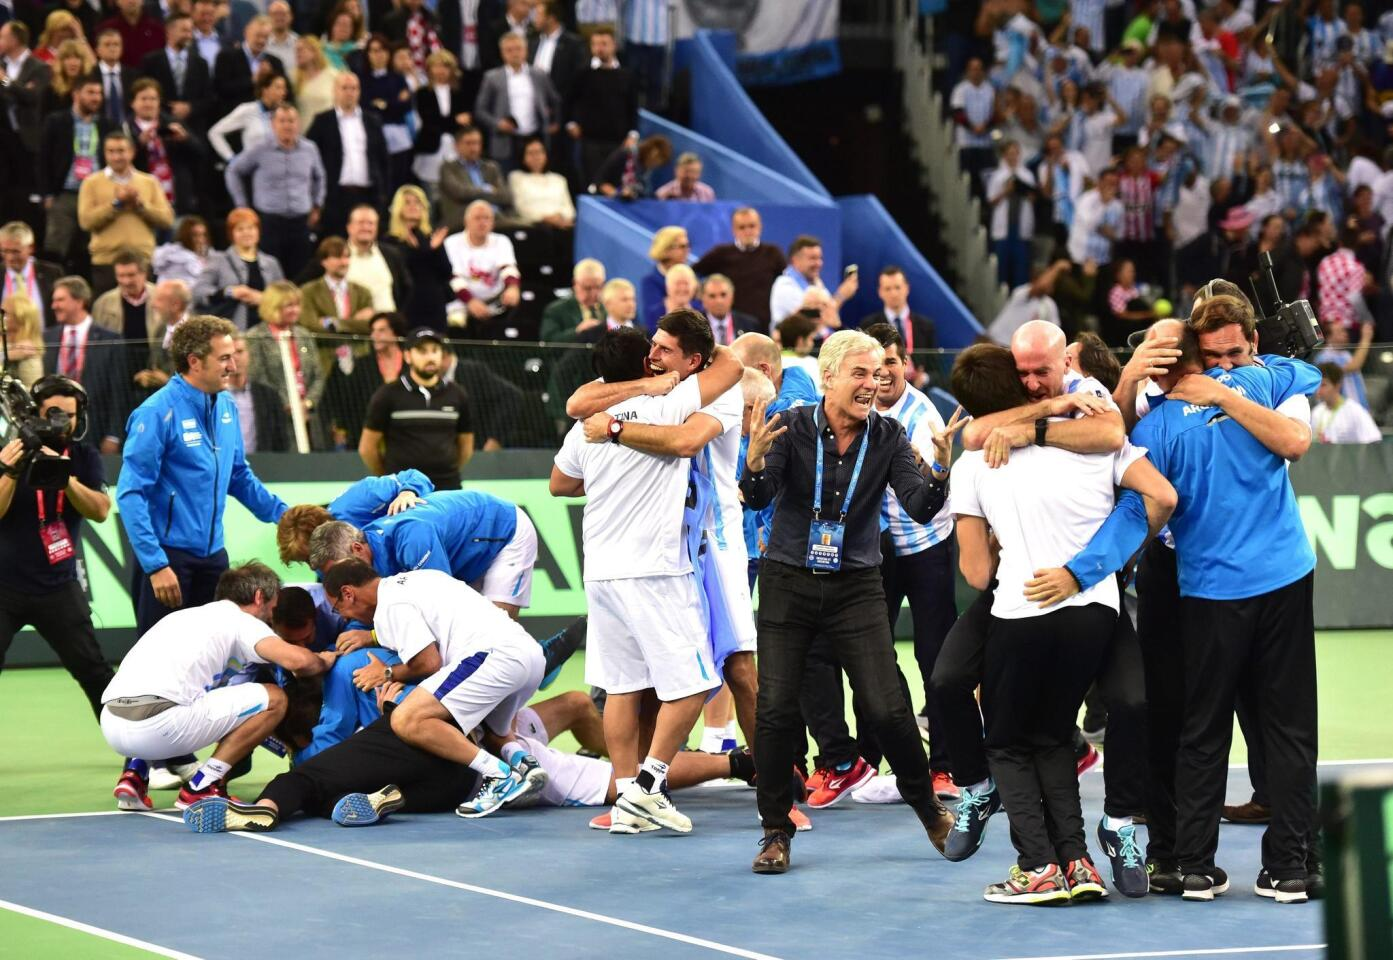 . Zagreb (Croatia), 27/11/2016.- Argentinian Davis Cup team players celebrate after defeating Croatia in the Davis Cup final in Zagreb, Croatia, 27 November 2016. (Croacia, Tenis) EFE/EPA/ANTONIO BAT ** Usable by HOY and SD Only **